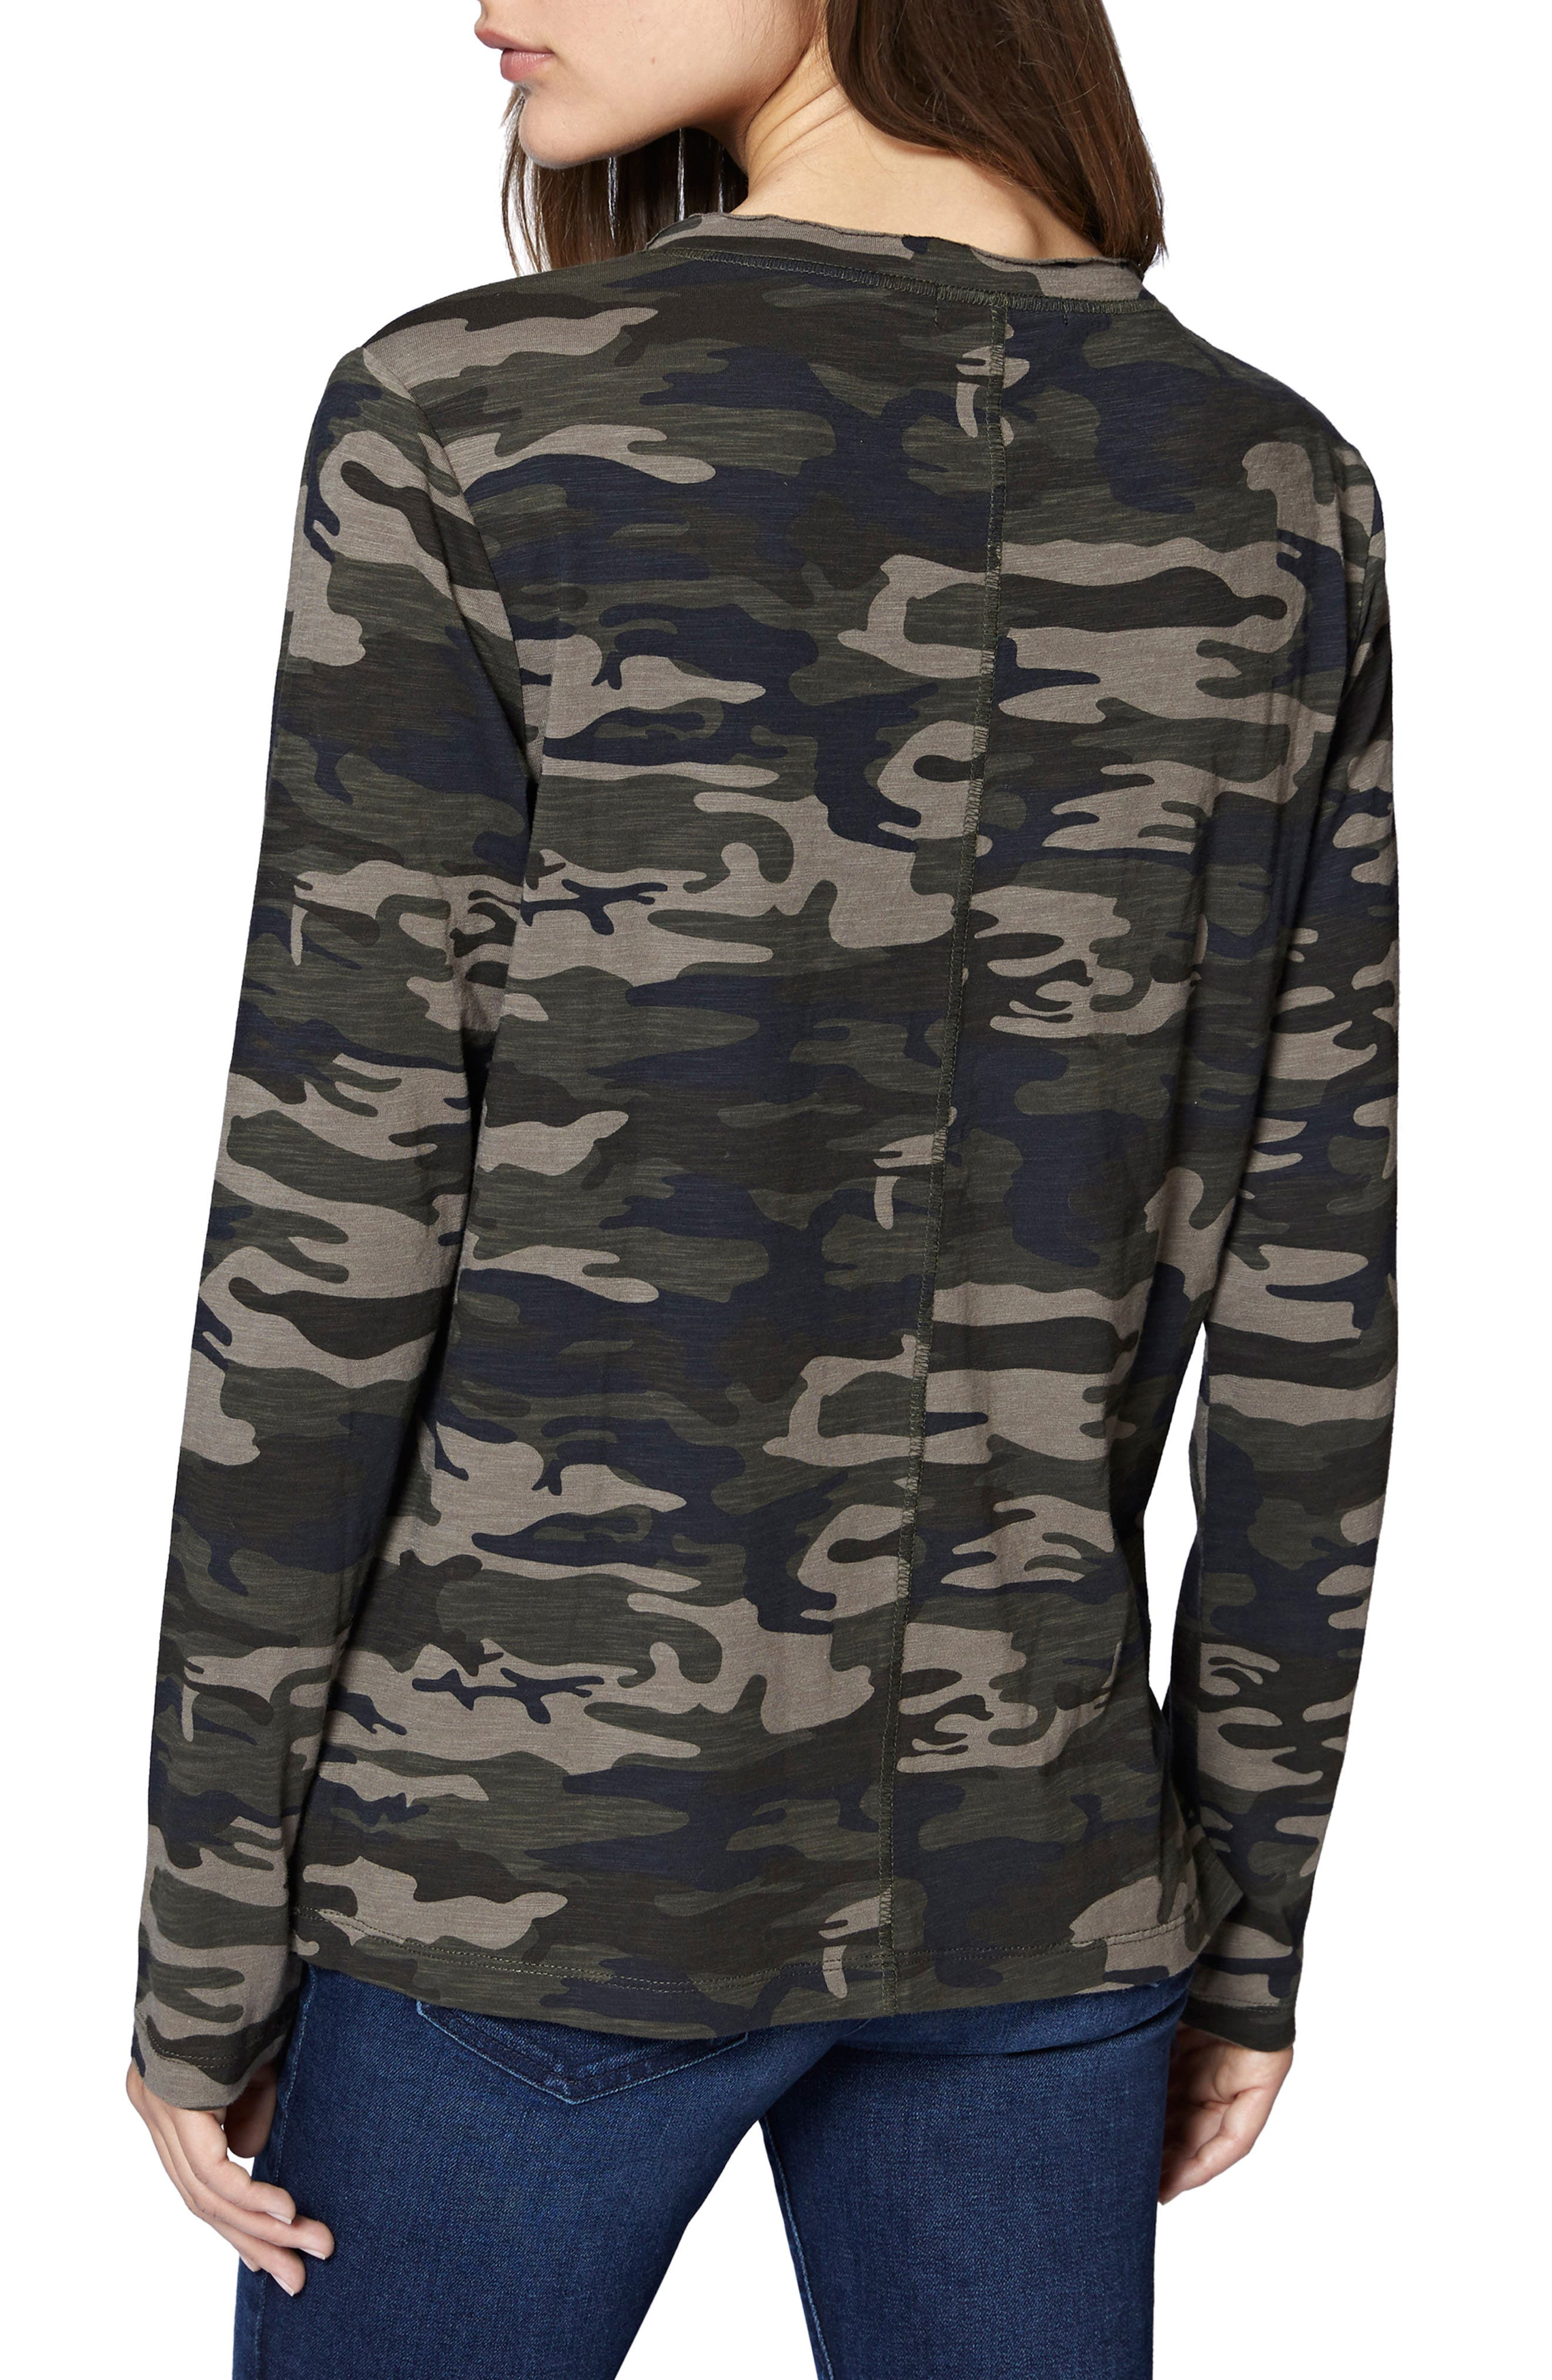 Ives Long Sleeve Camo Tee,                             Alternate thumbnail 2, color,                             HUMAN NATURE CAMO